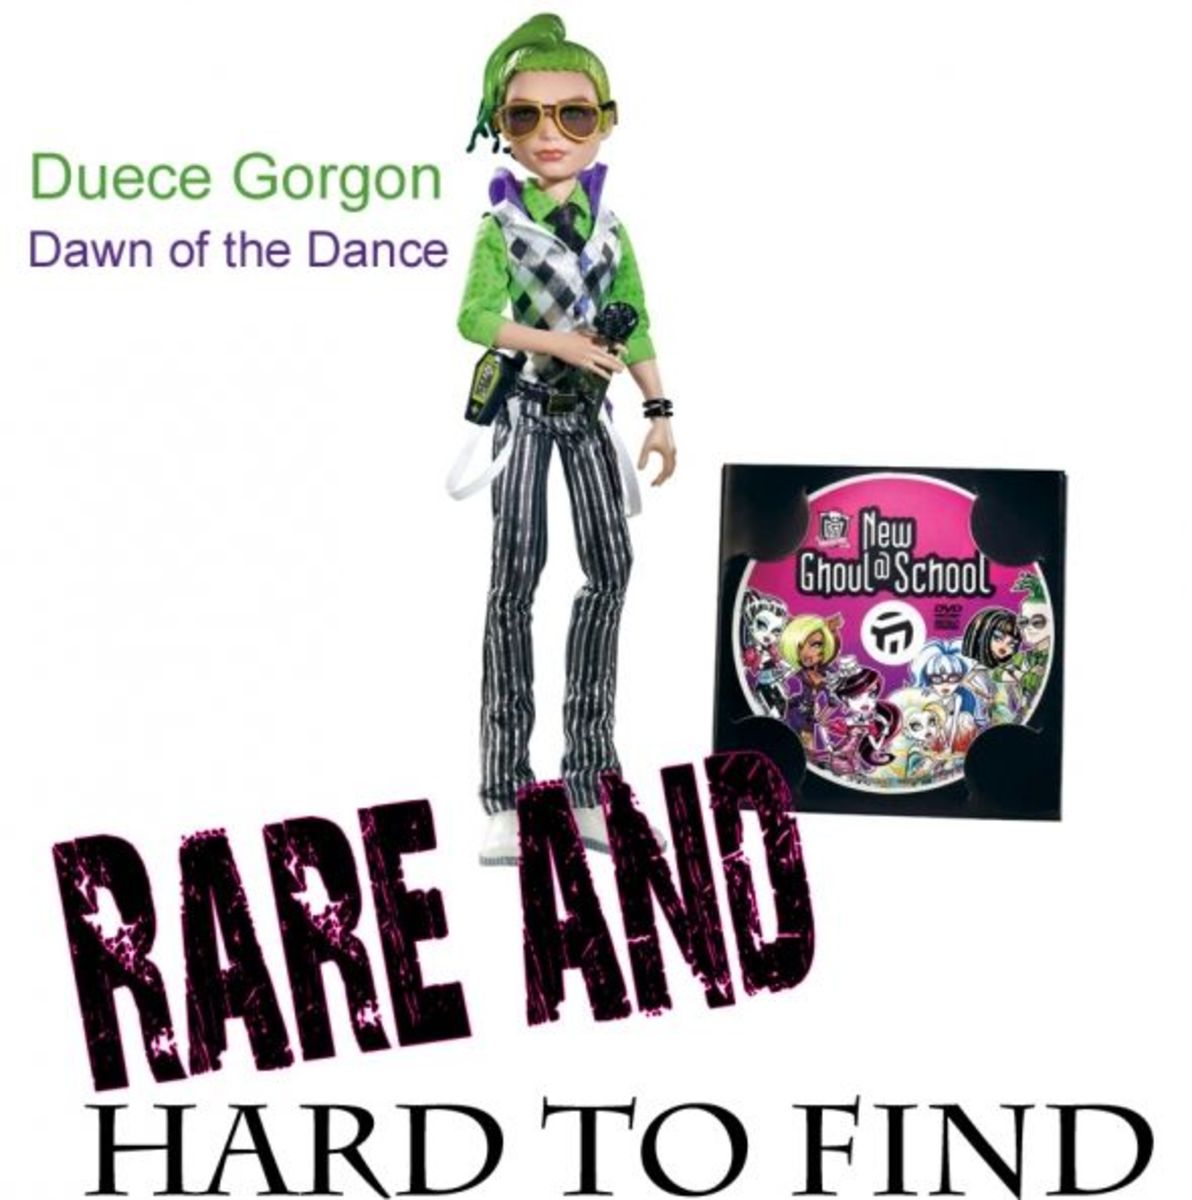 Duece Gorgon Dawn of the Dance Monster High Doll